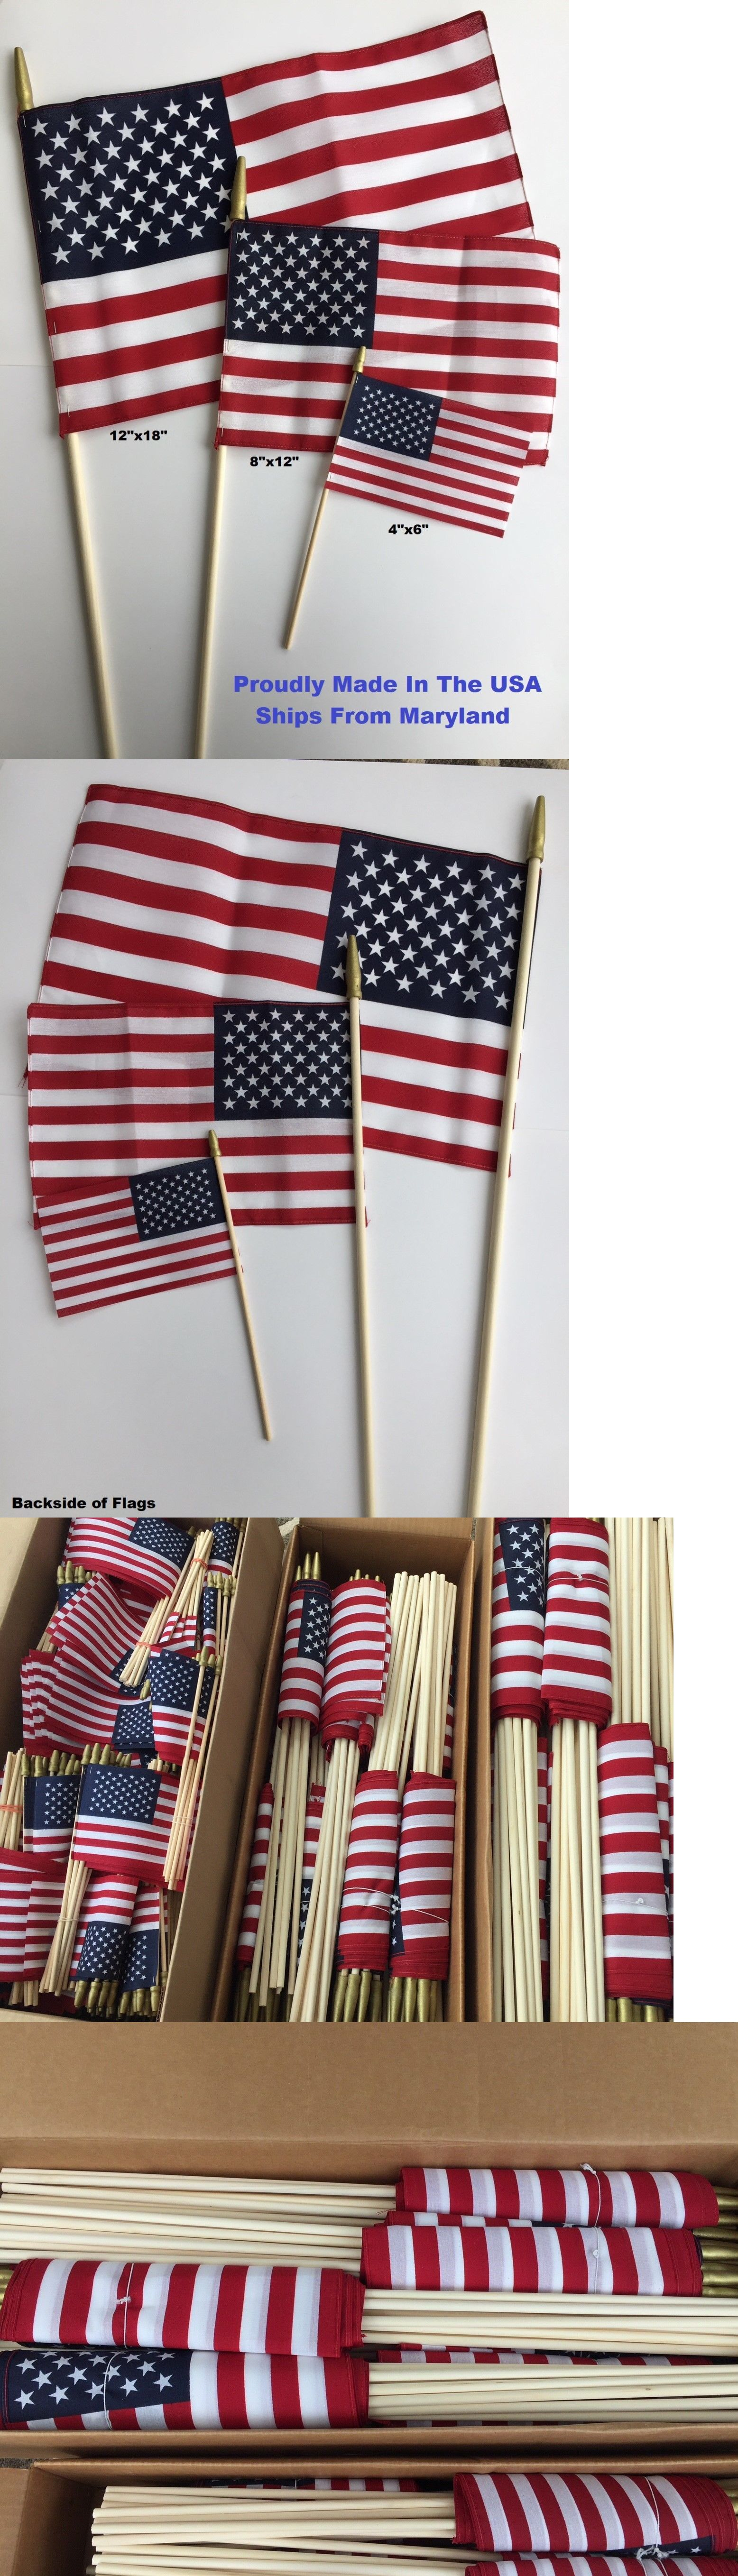 American Flags On A Stick United States Made In Usa 4x6 8x12 12x18 Hand Held Ebay How To Make American Flag Bold Colors